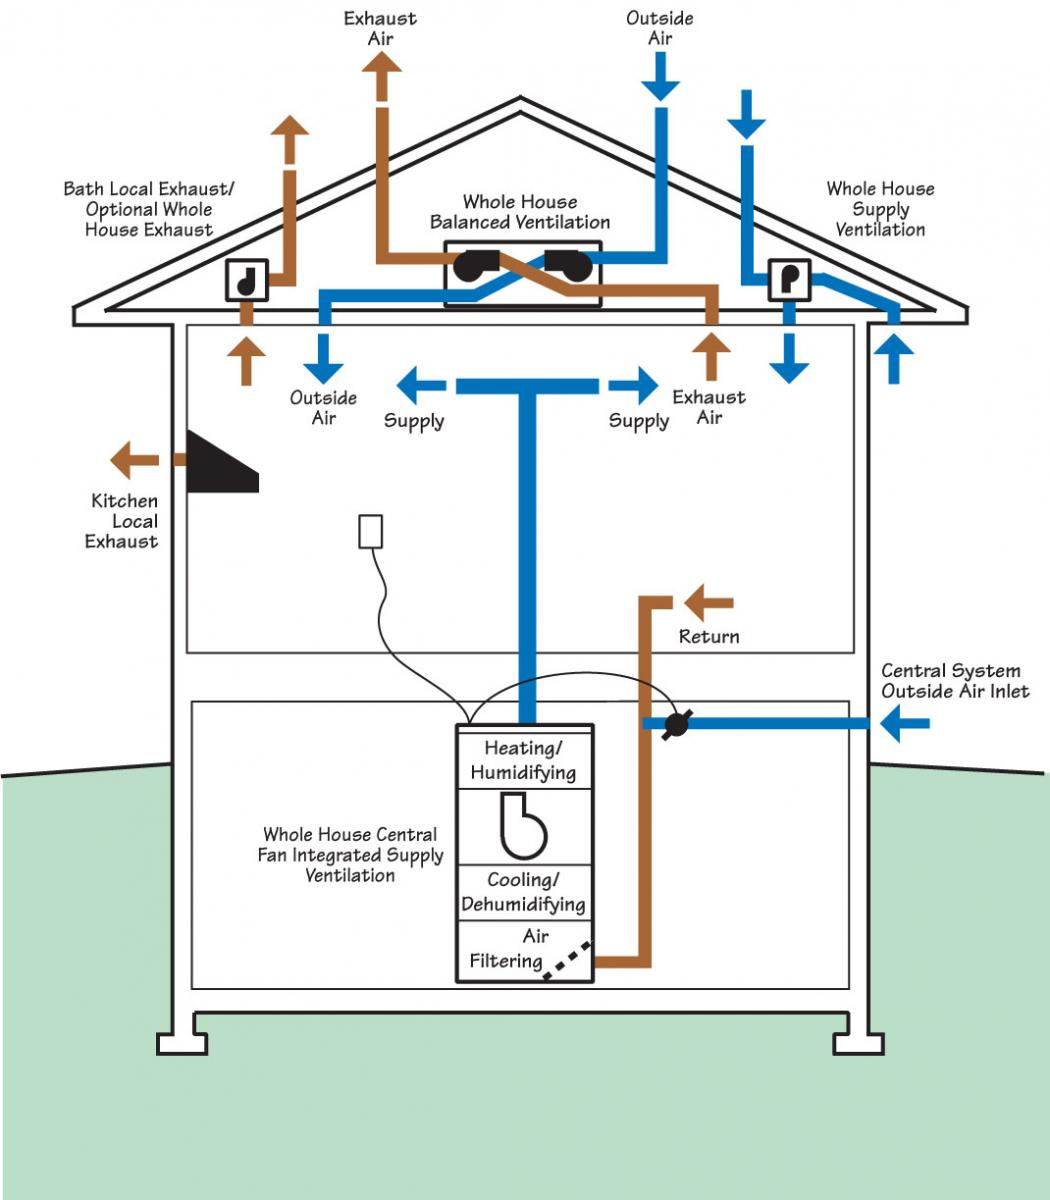 Pre Retrofit Assessment Of Ventilation Systems Building America Exhaust System Diagram Related Keywords Suggestions Example